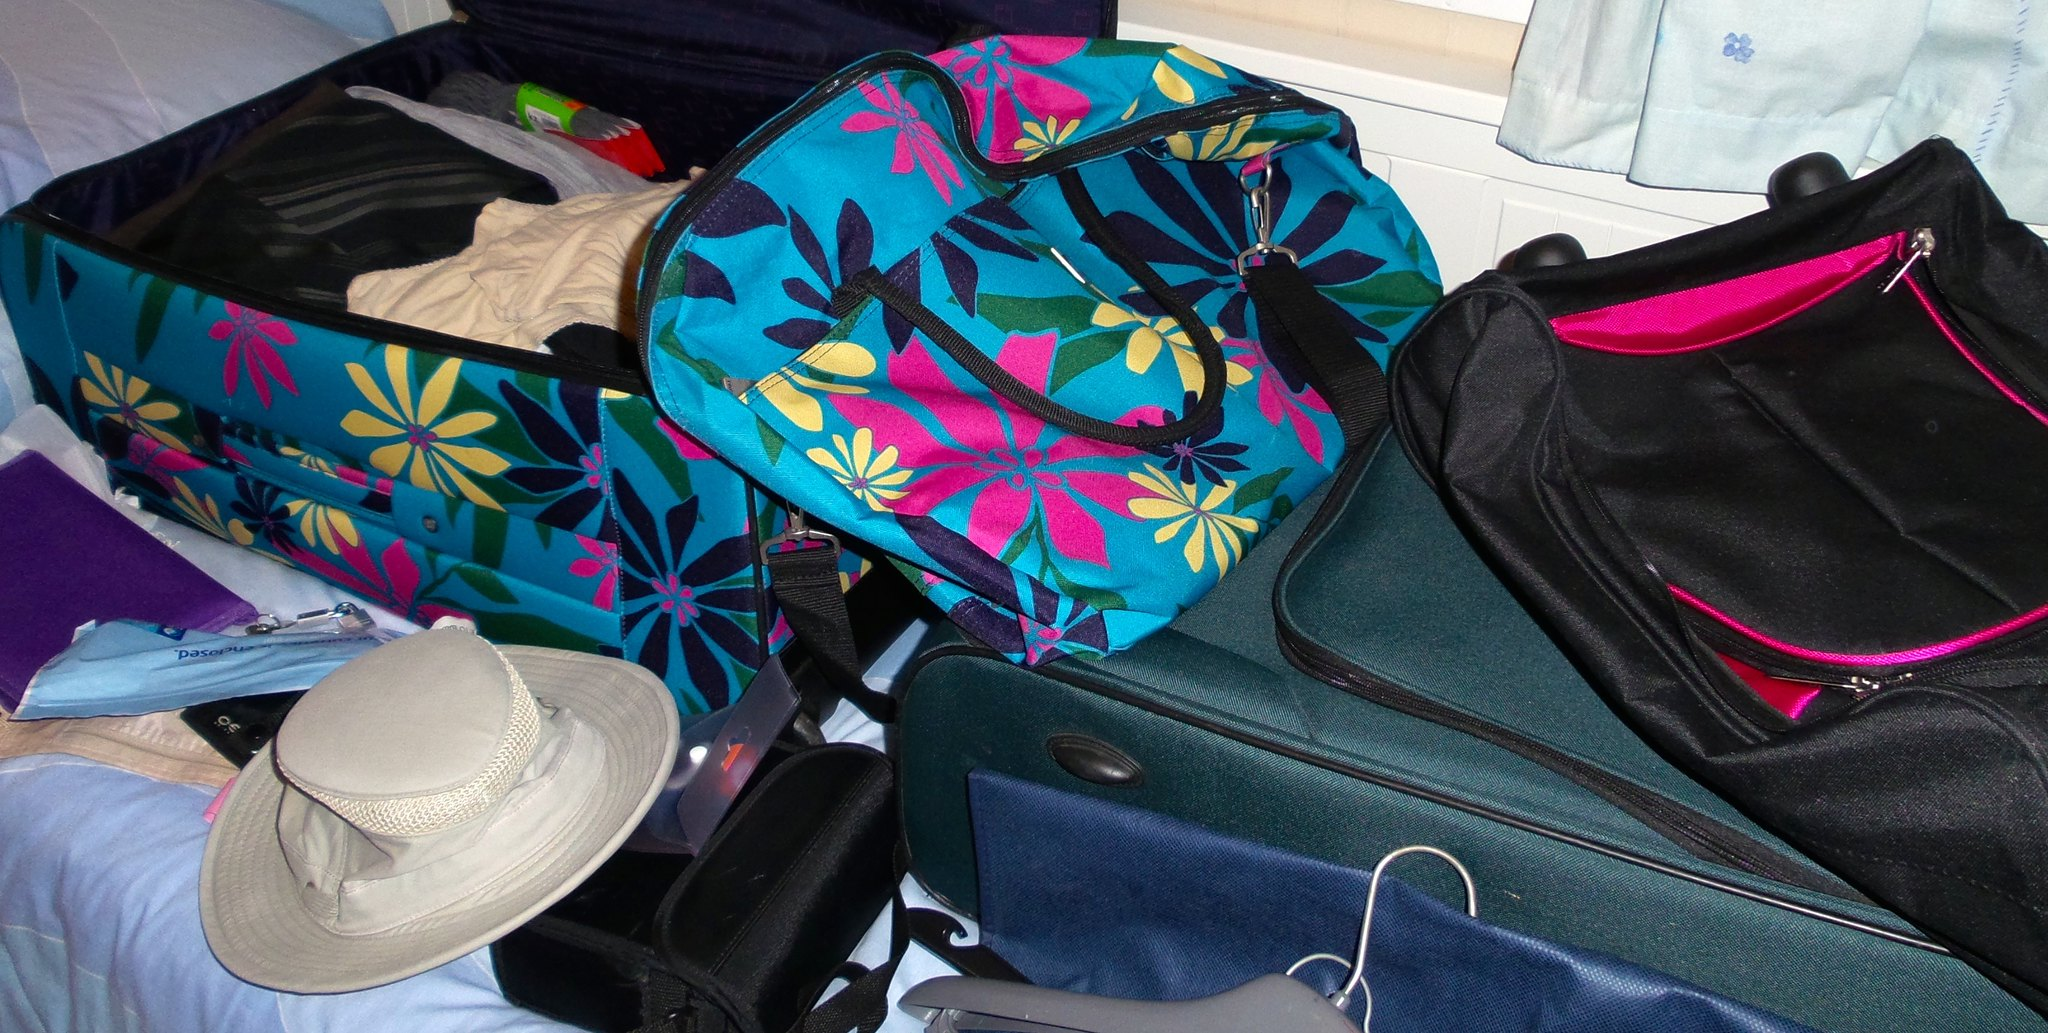 Following a cruise packing list for efficient packing